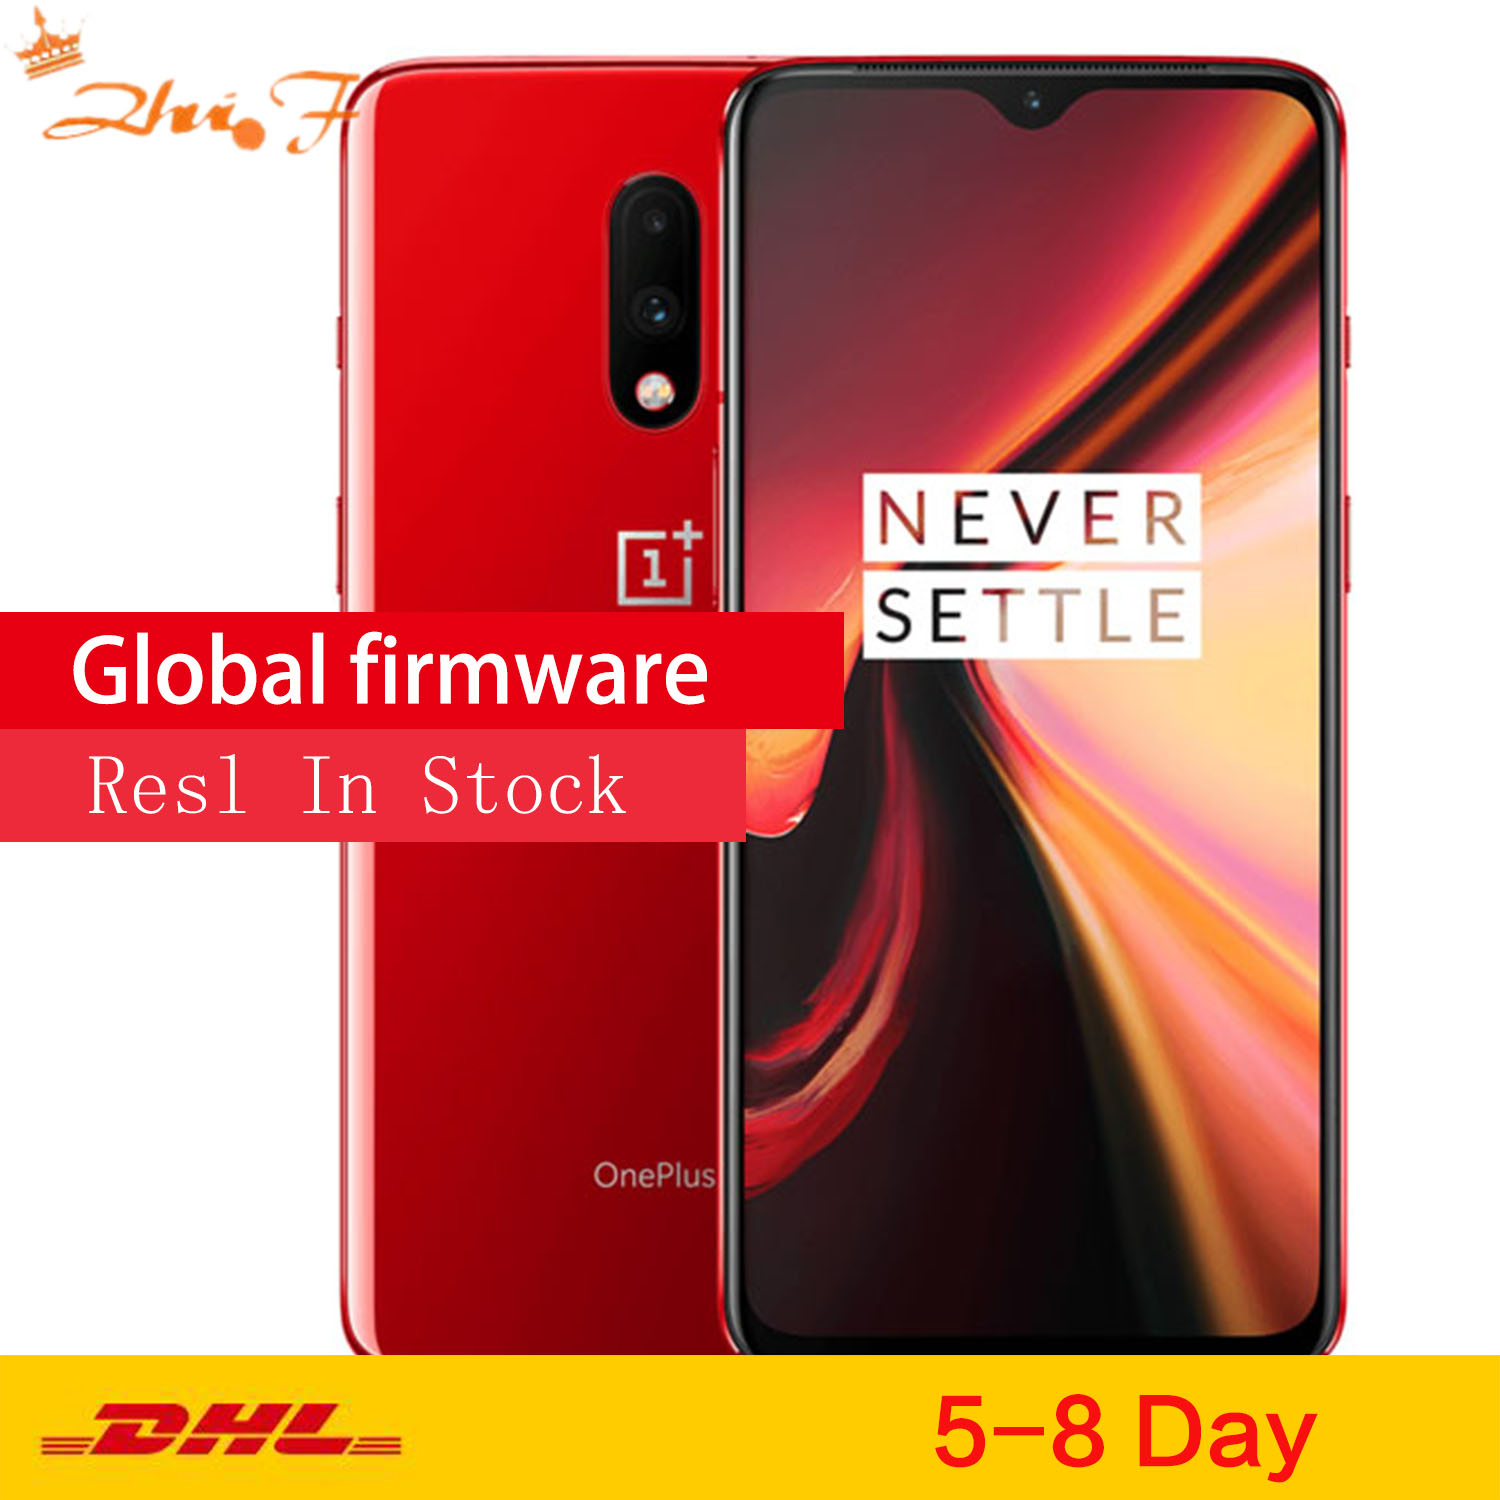 Original Oneplus 7 Smartphone 6.2'' 2340*1080P Android 9 Snapdragon 855 8G RAM 256G ROM Mobile Phone